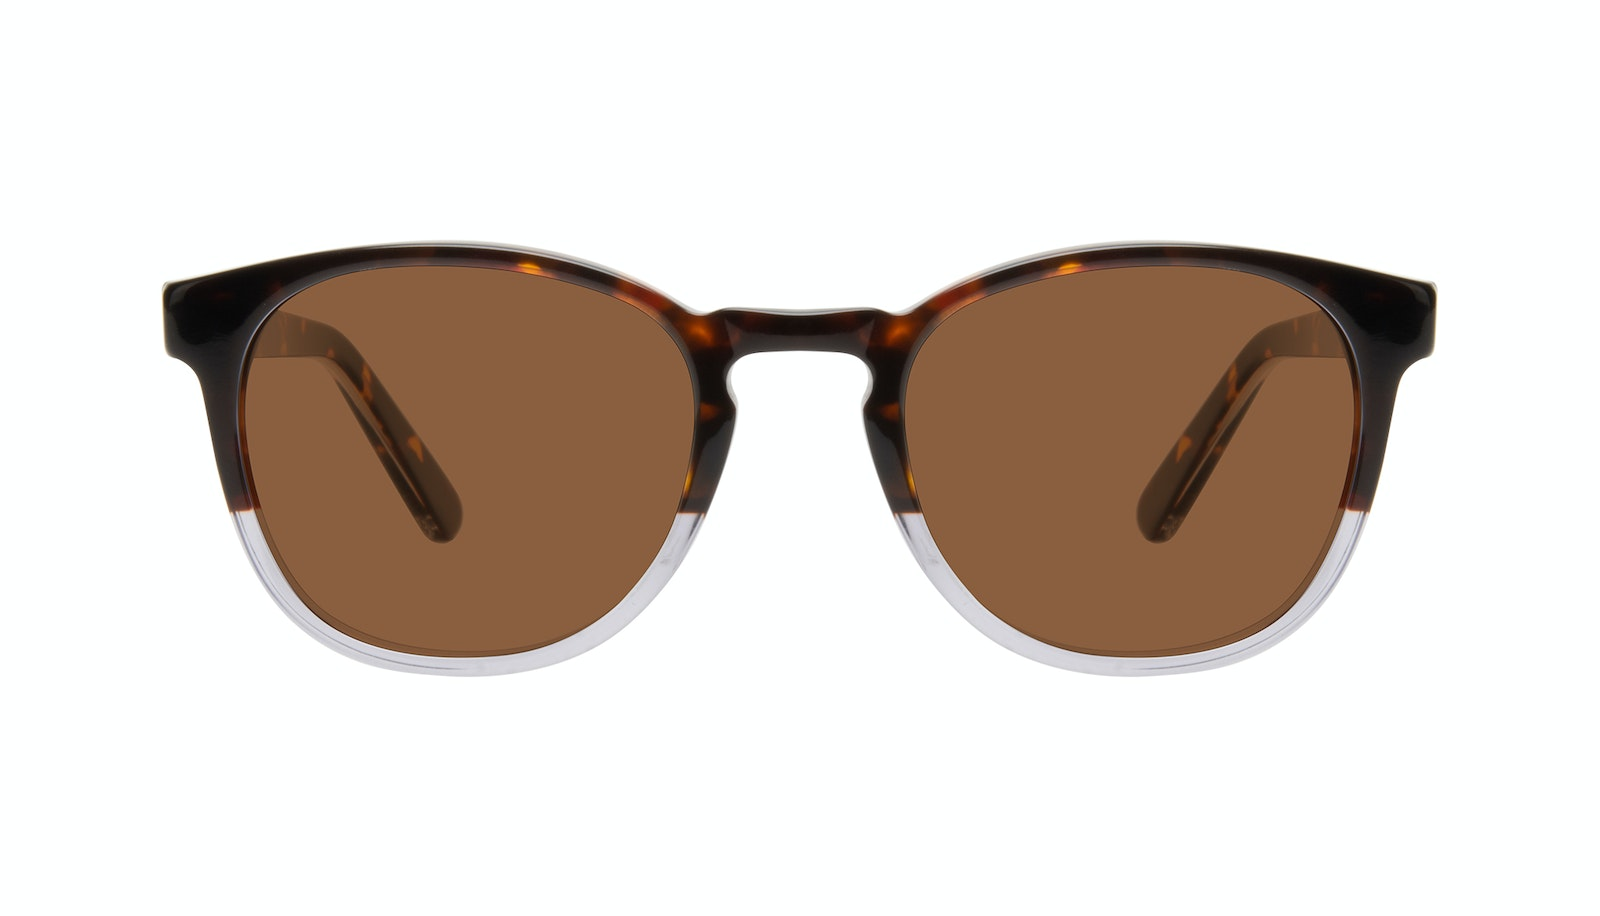 Affordable Fashion Glasses Round Sunglasses Men Boreal Pacific